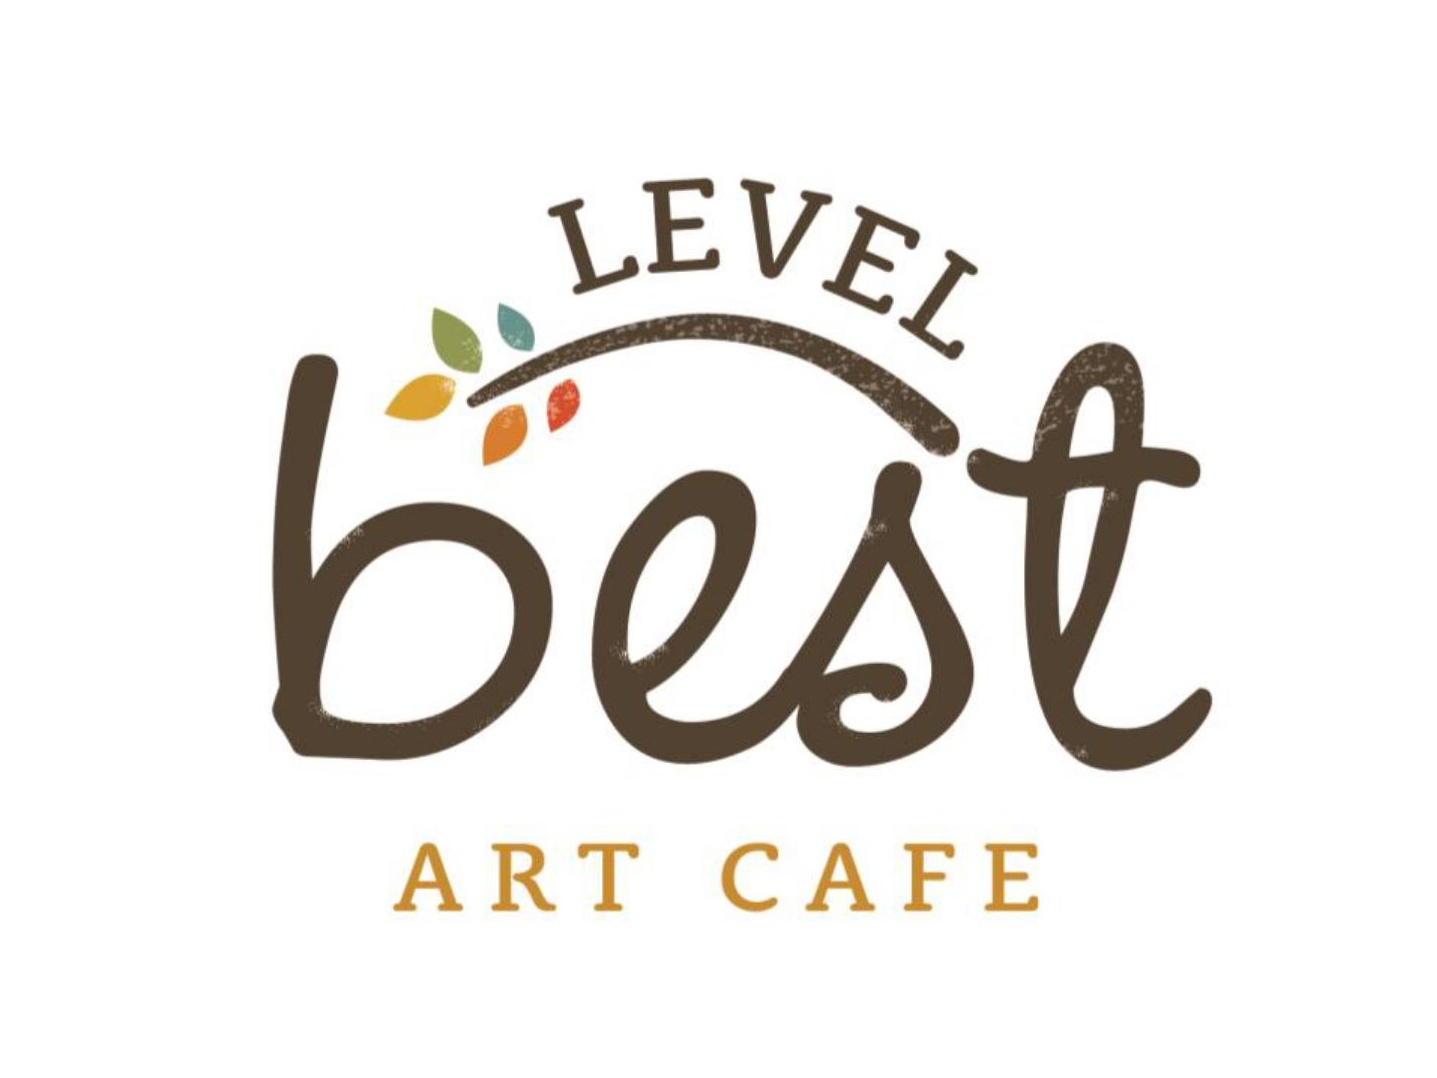 Level Best Art Cafe Logo